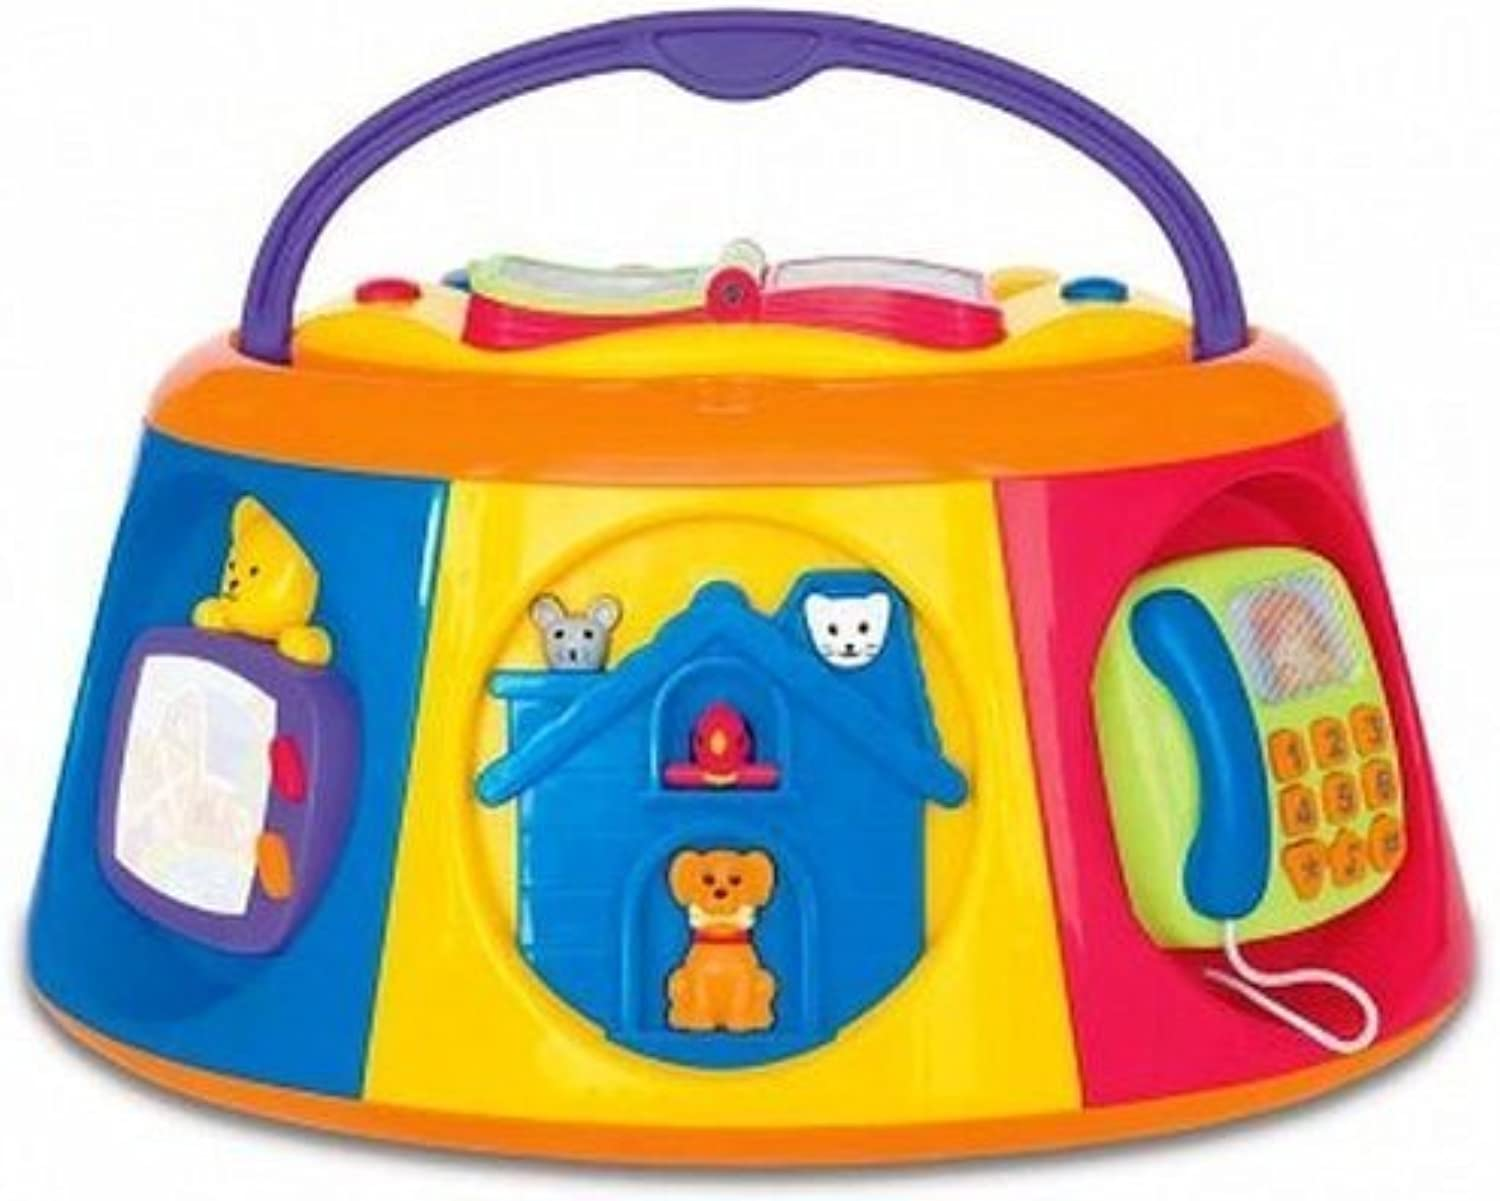 Kiddieland Toys Carry Along Box by Kiddieland Toys Limited